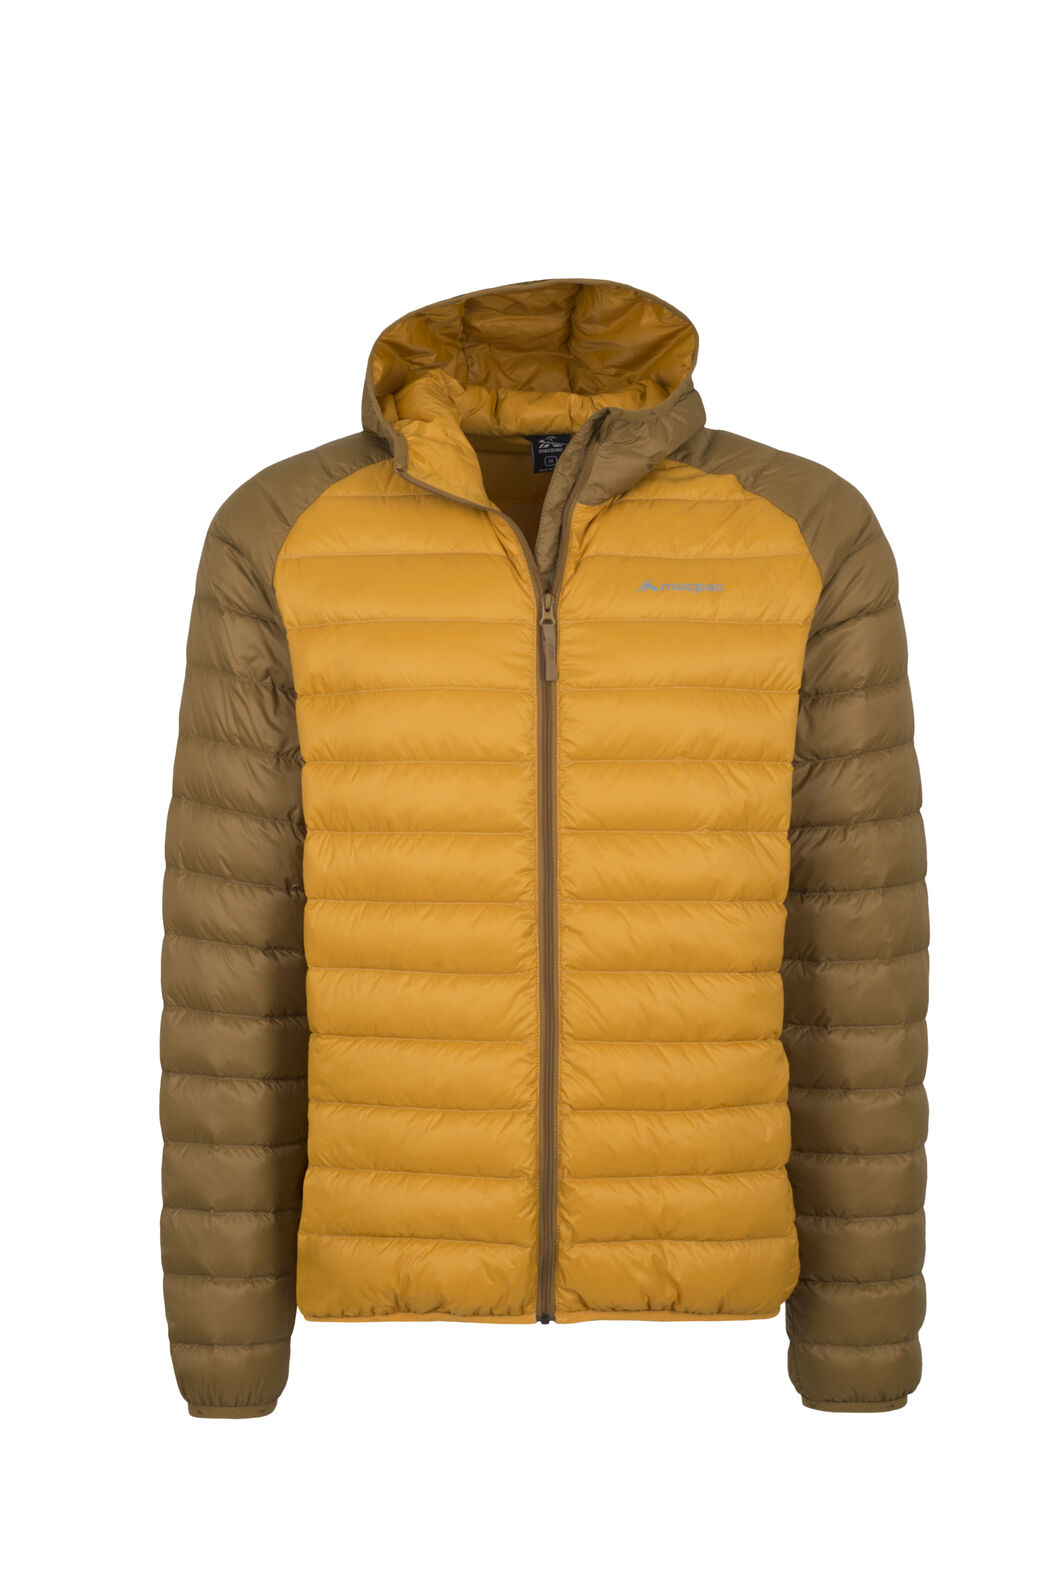 Macpac Uber Hooded Down Jacket - Men's, Bronze Brown, hi-res